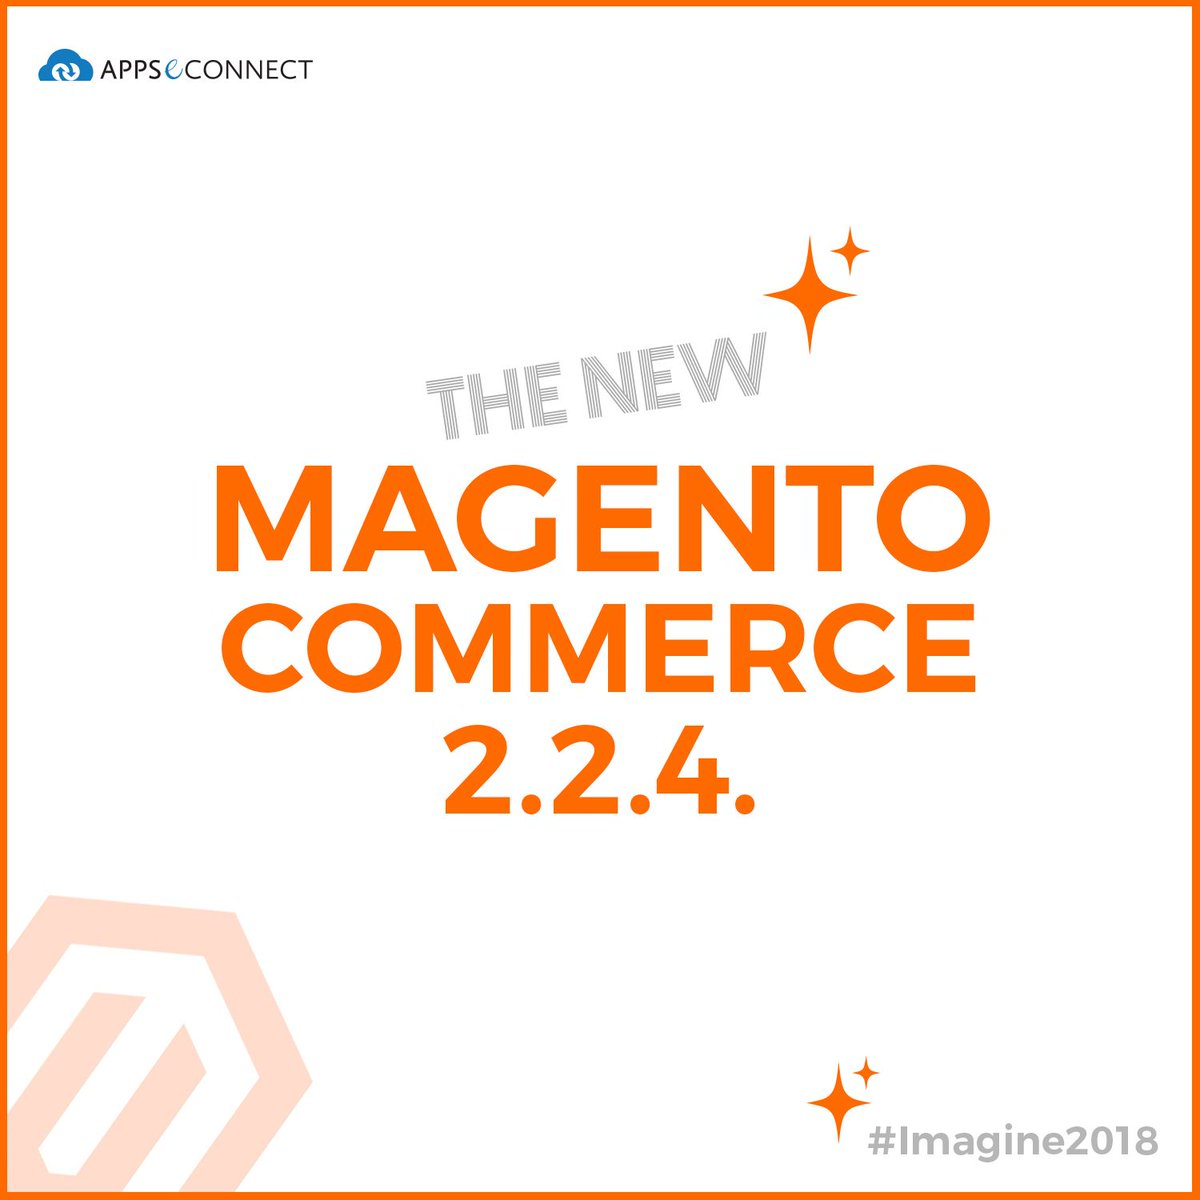 appseconnect: #Magento 2.2.4 is here!nnMagento announced it's latest version - 2.2.4 at #MagentoImagine 2018! #Magento2 https://t.co/QtoXZr2m8t